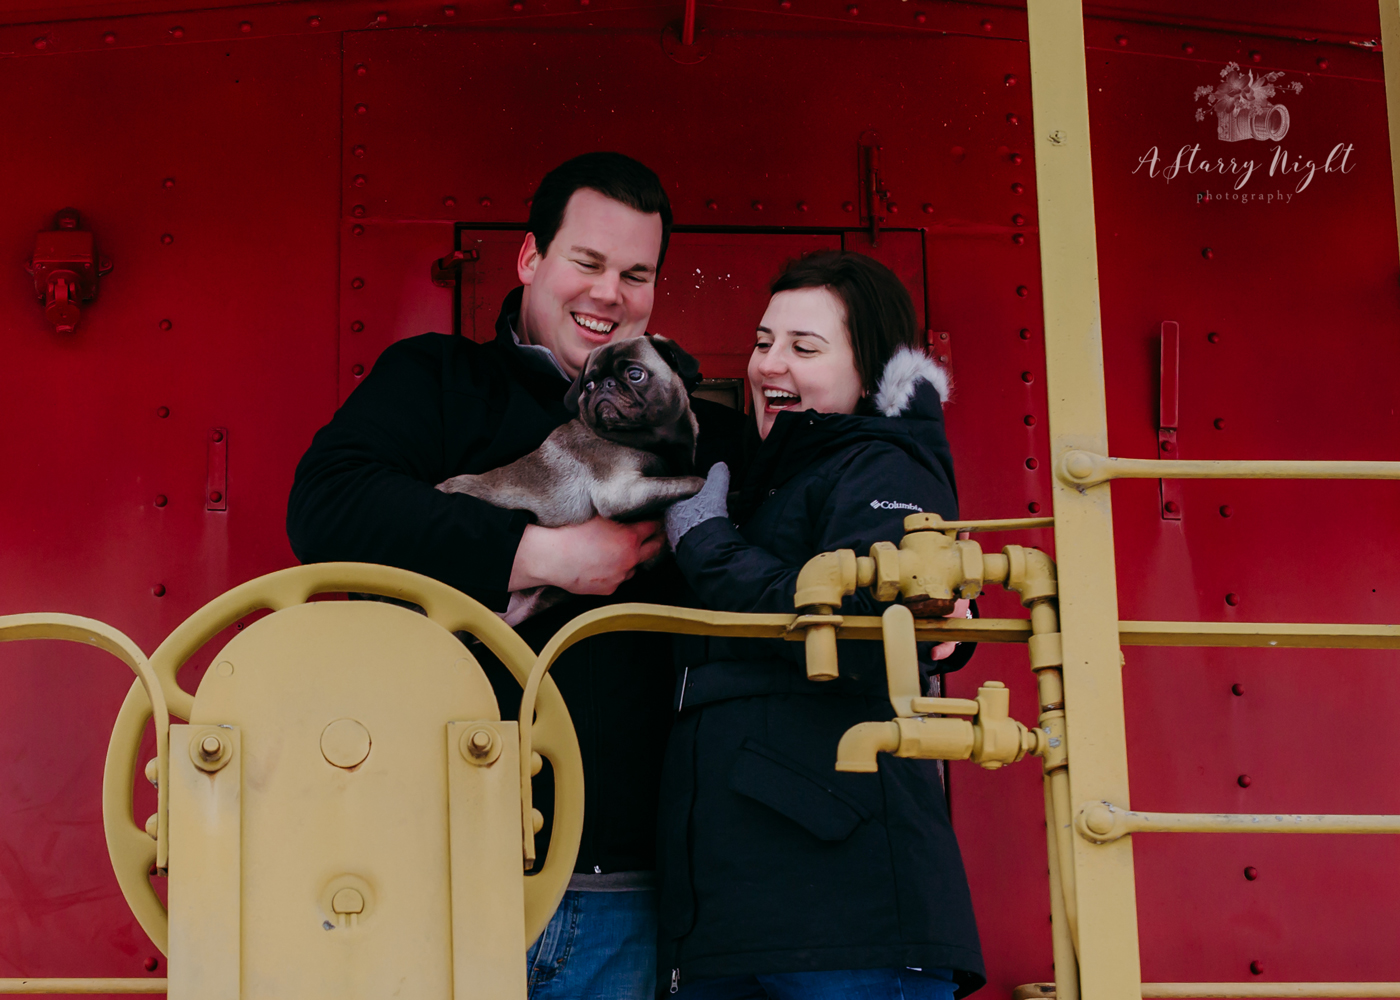 Couple-and-Pug-Smiling-Clare-Caboose.jpg